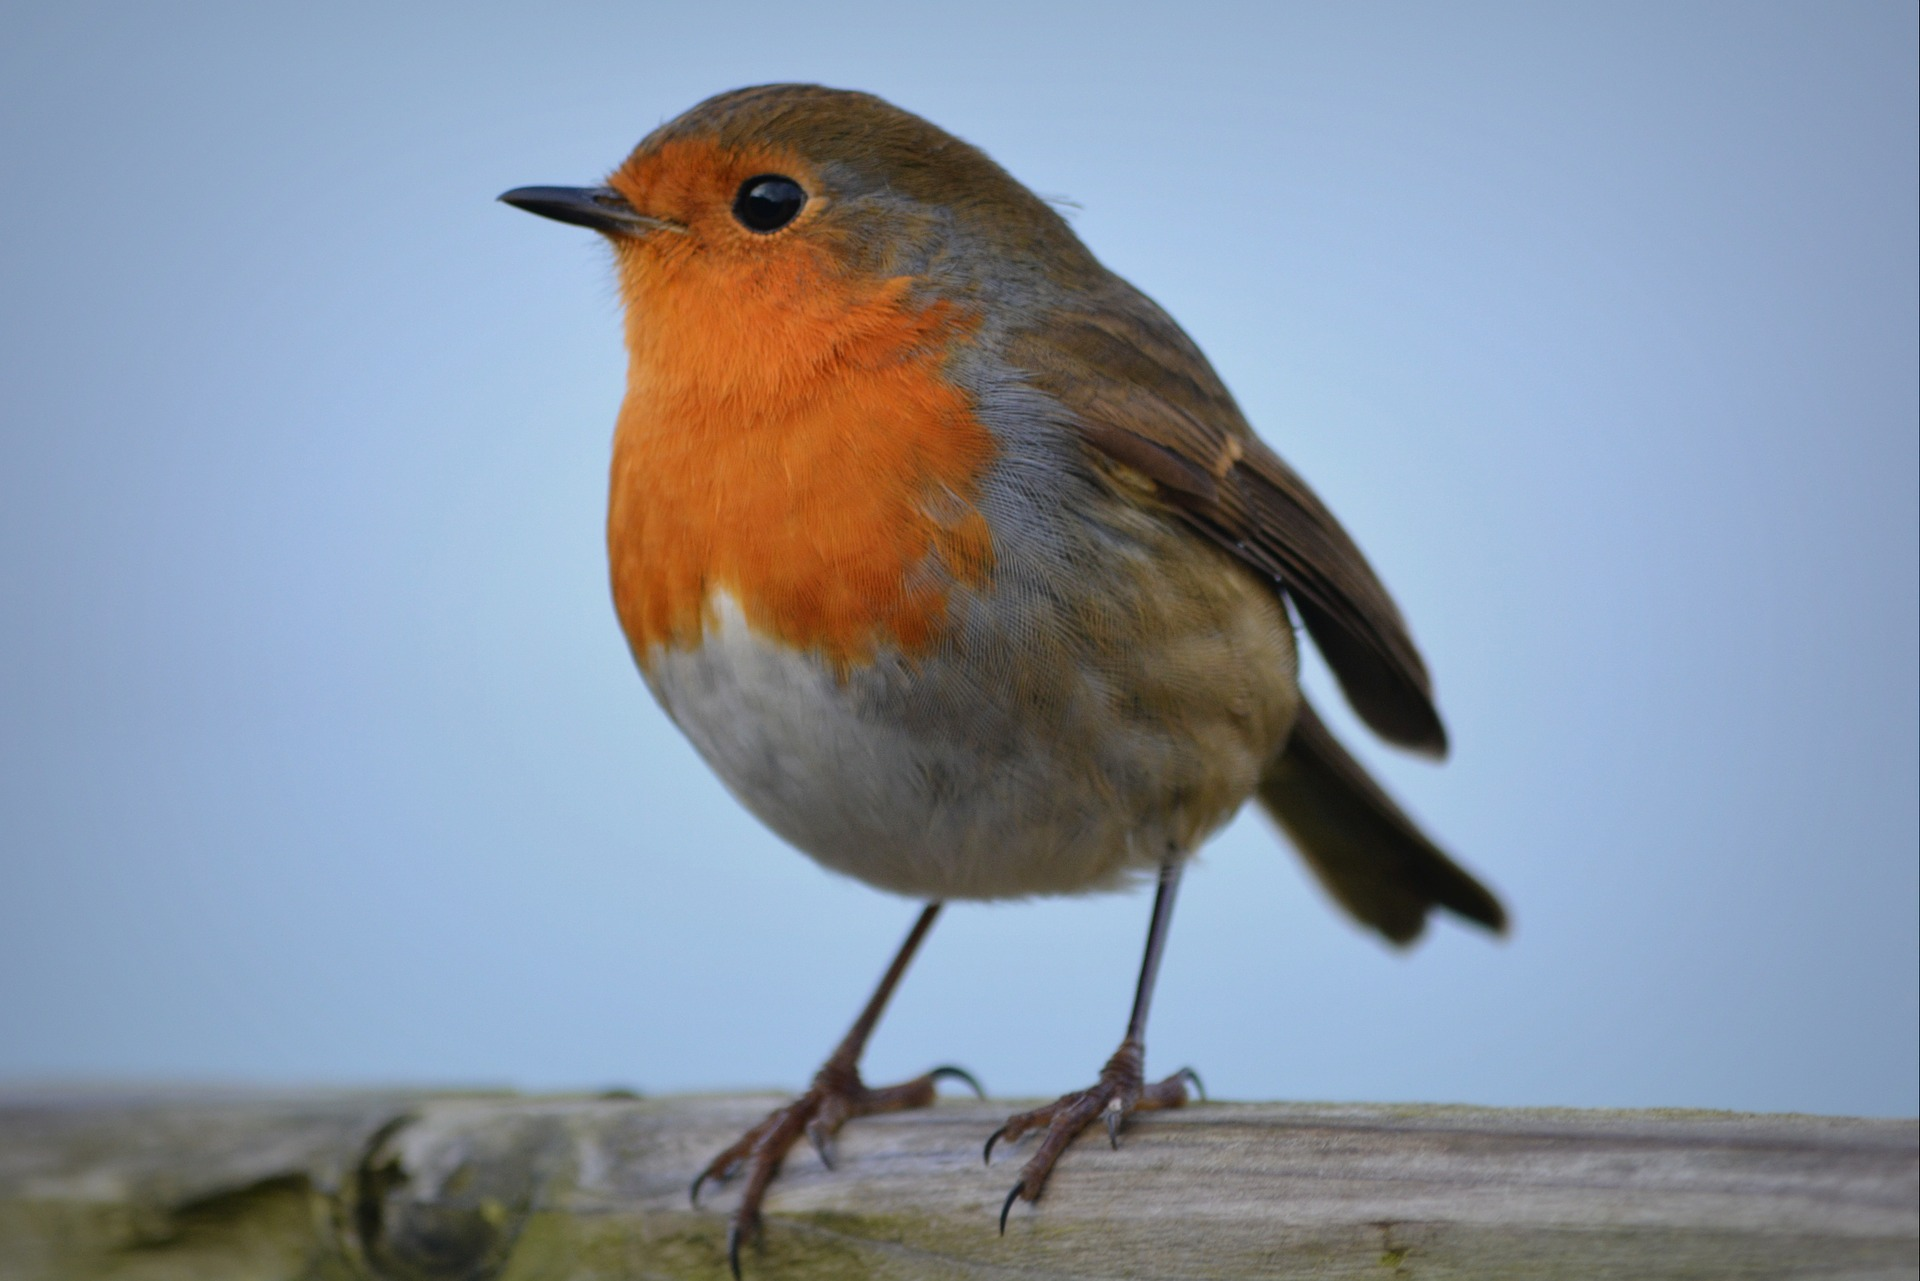 Watching garden birds such as this robin is a fun hobby